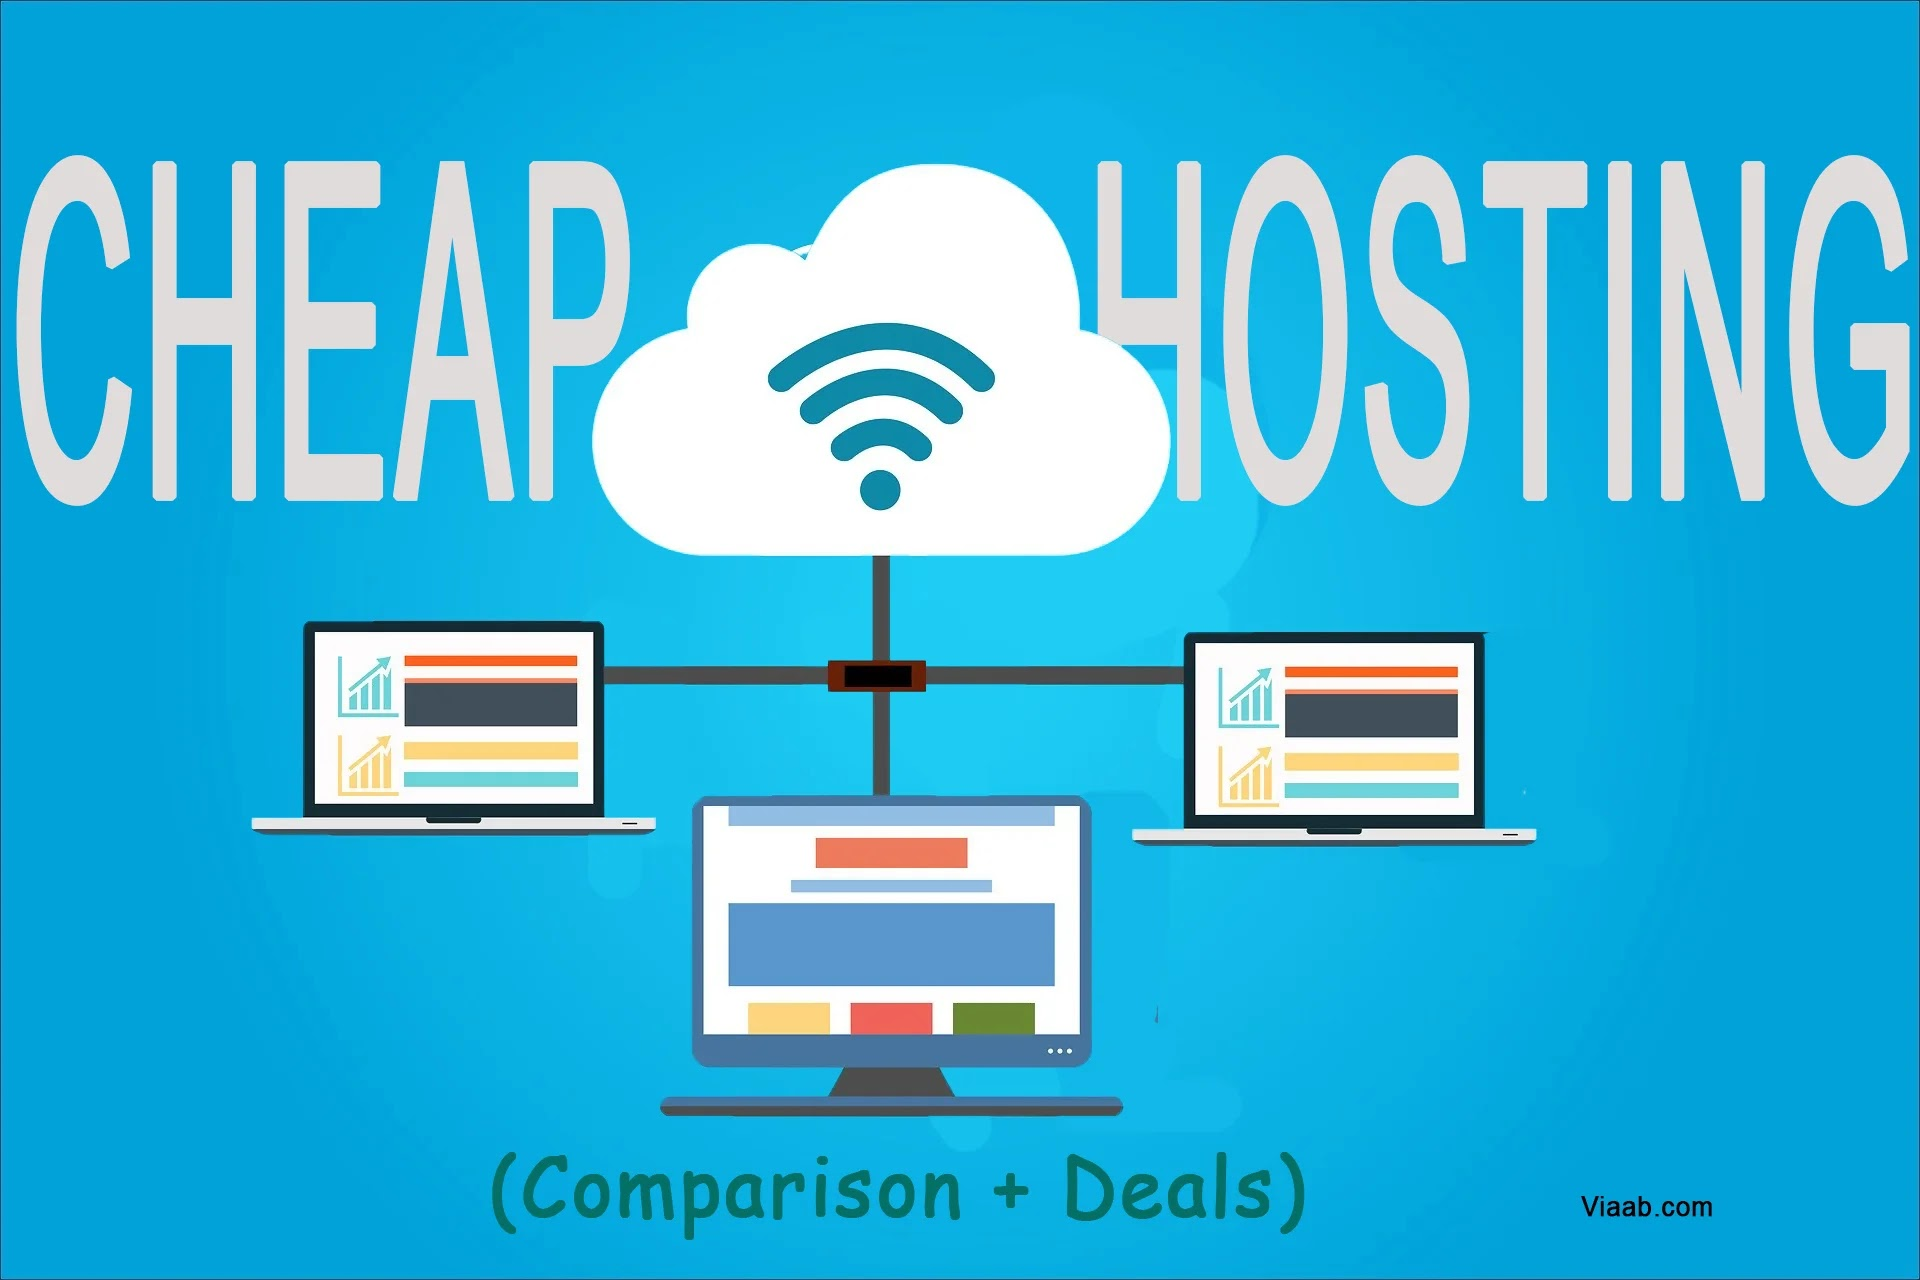 Cheapes WordPress Hosting Services in 2020 (Comparison + Deals)